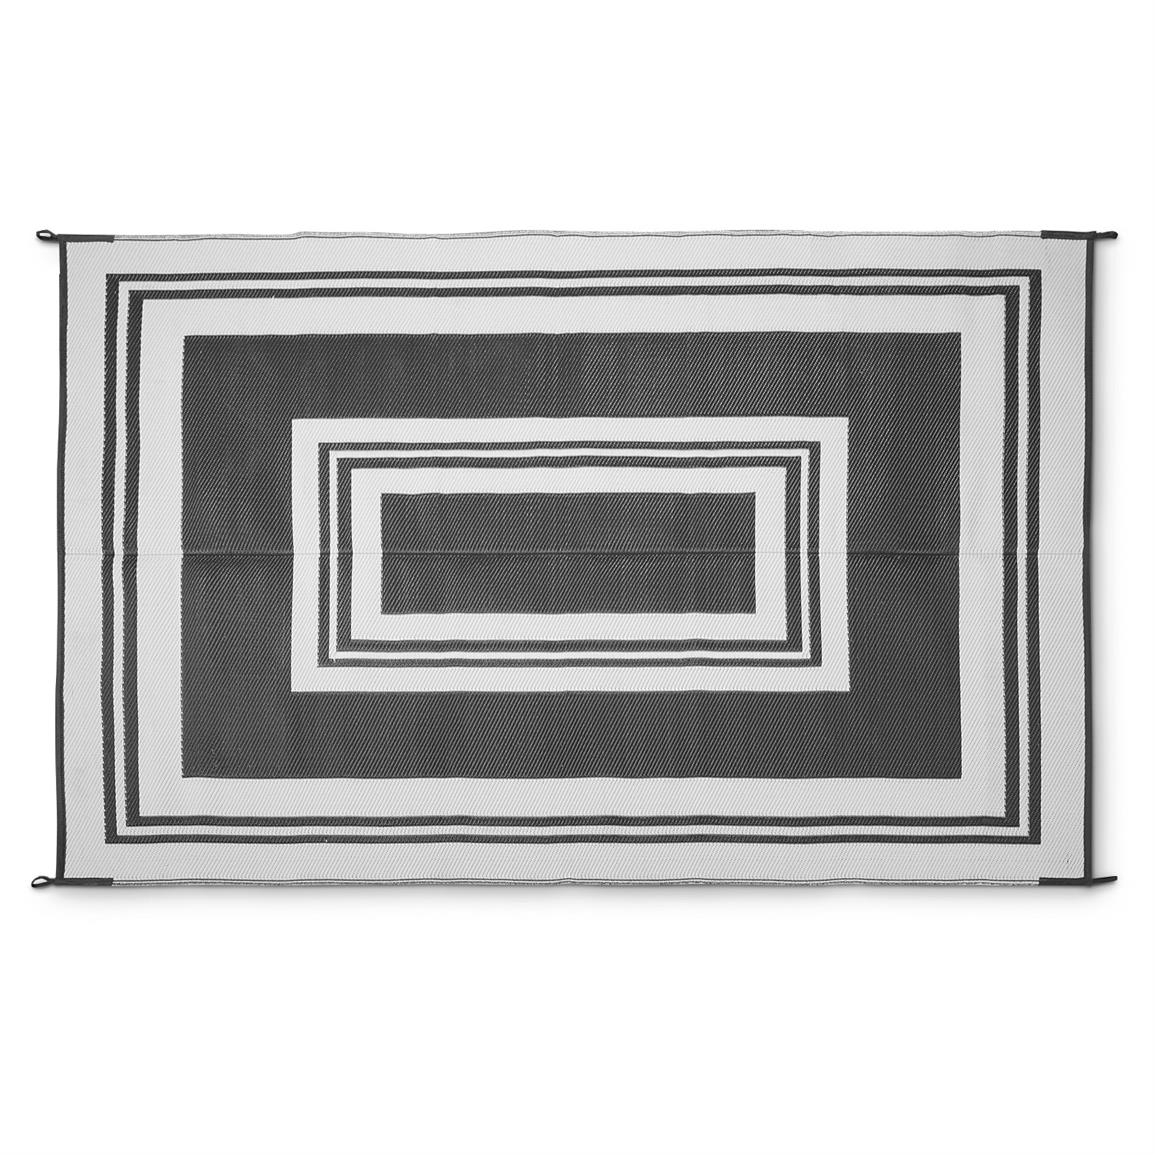 Guide Gear Reversible 9 X 12 Outdoor Rug Border Pattern Pertaining To Cream And Black Rugs (Image 11 of 15)